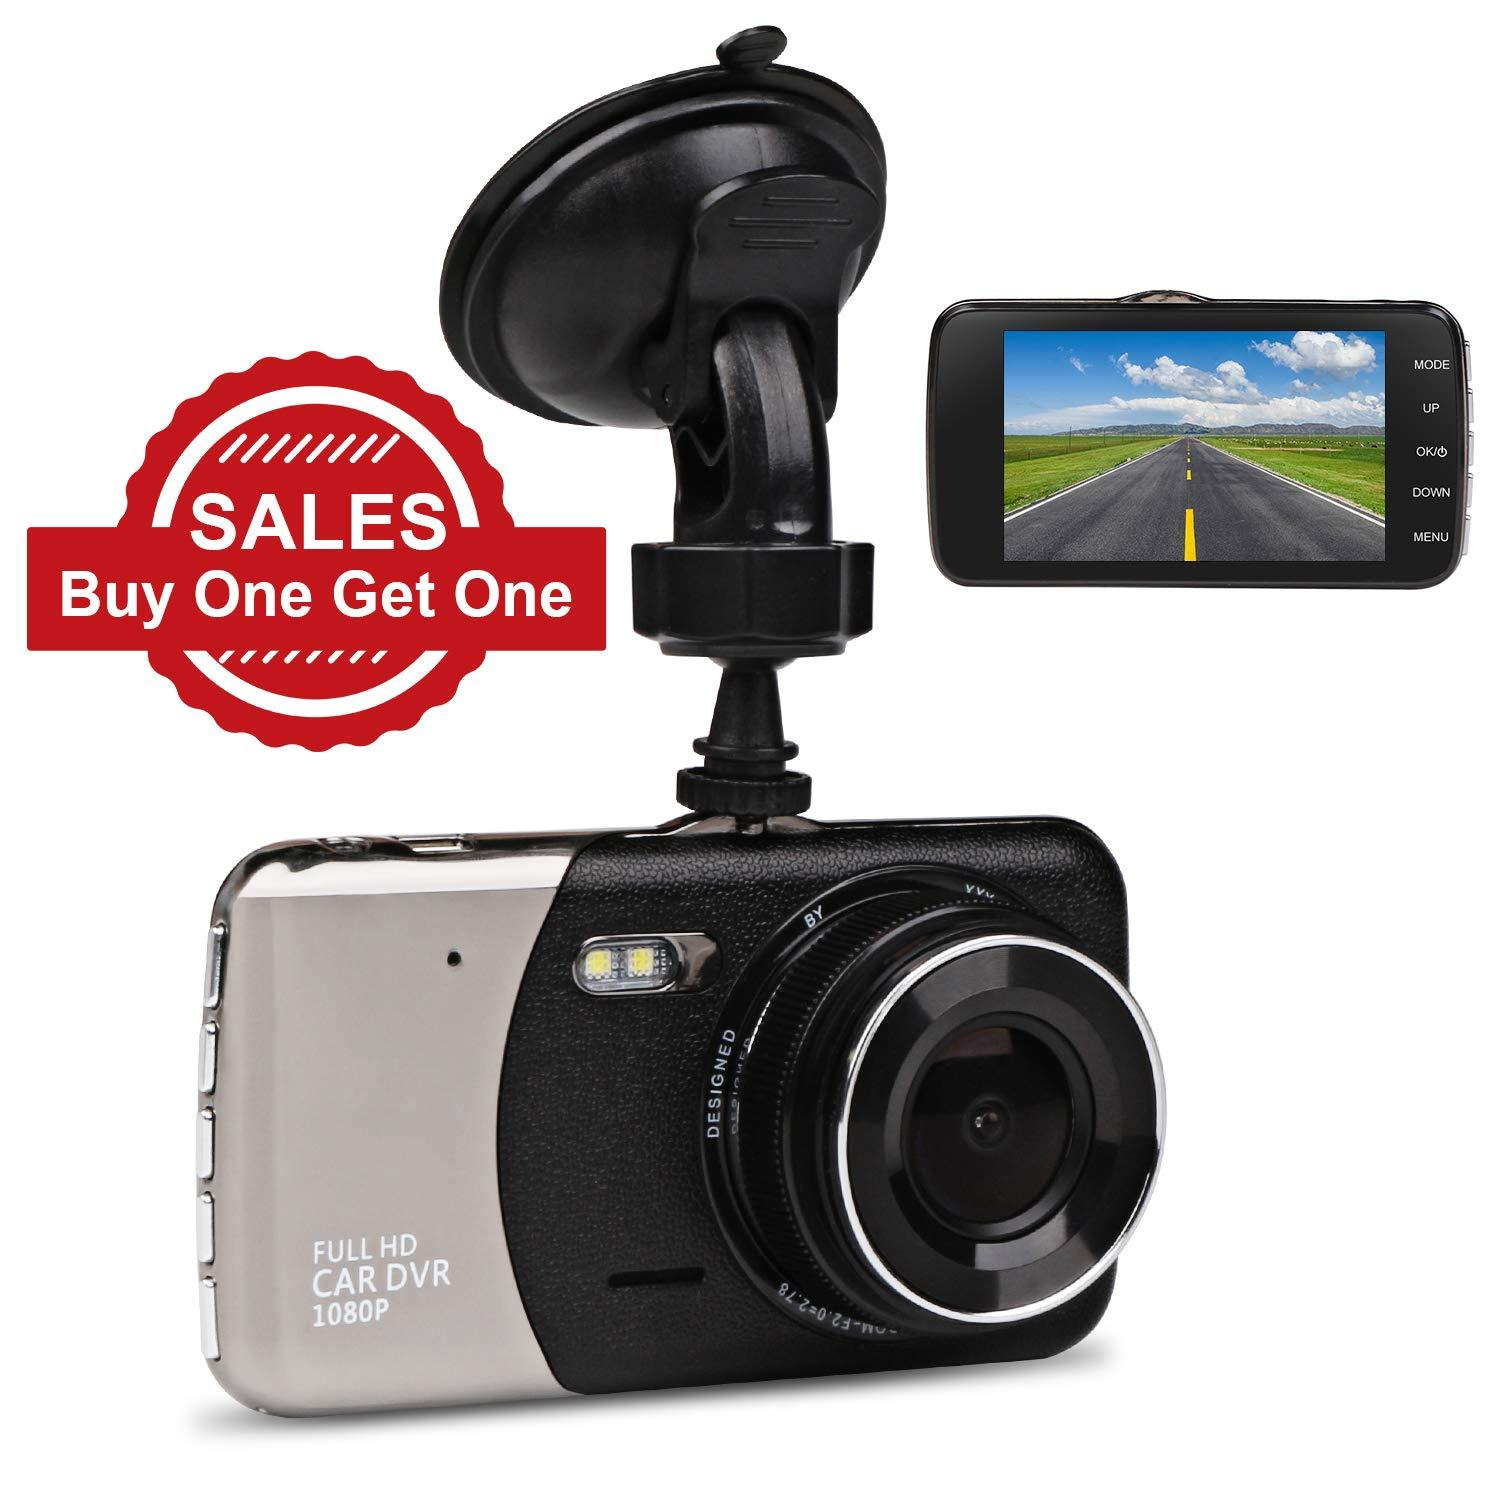 JC Beauty Digital Mini Car Dashboard Camera DVR - New Upgrade Version -  170° Wide Angle Front and Rear Dual Lens - 1080P Full HD - For Video Loop